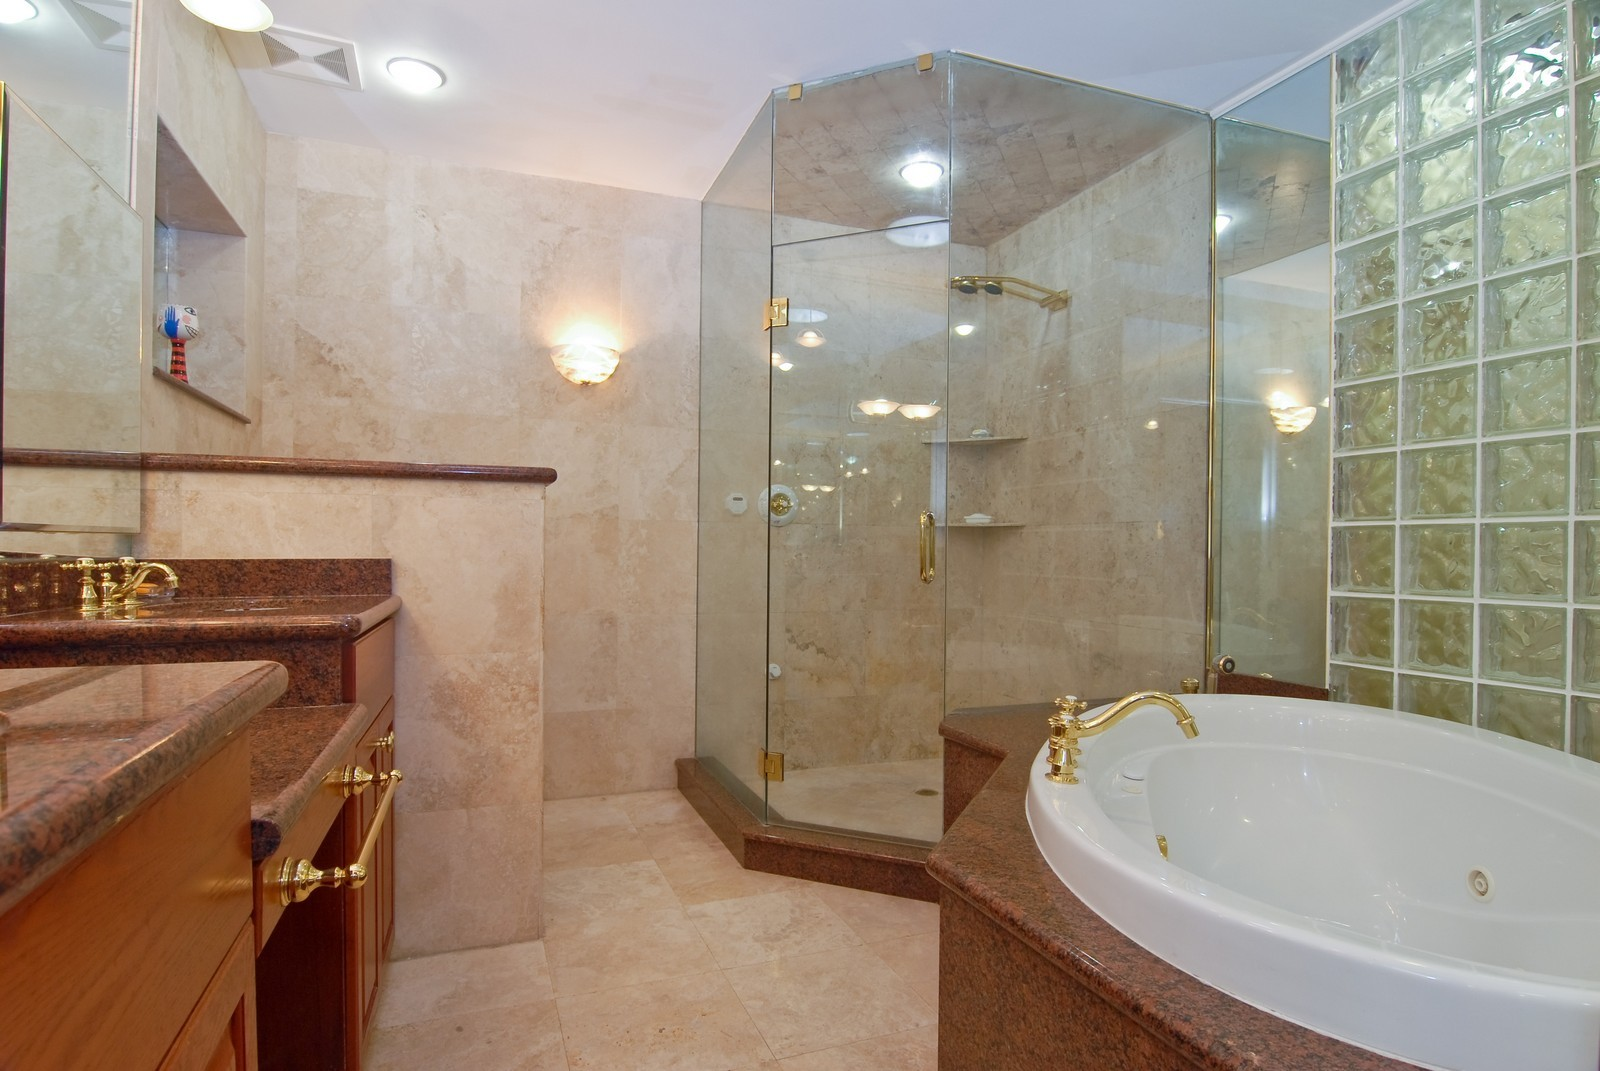 Real Estate Photography - 3403 Poinciana, Coconut Grove, FL, 33133 - Master Bathroom